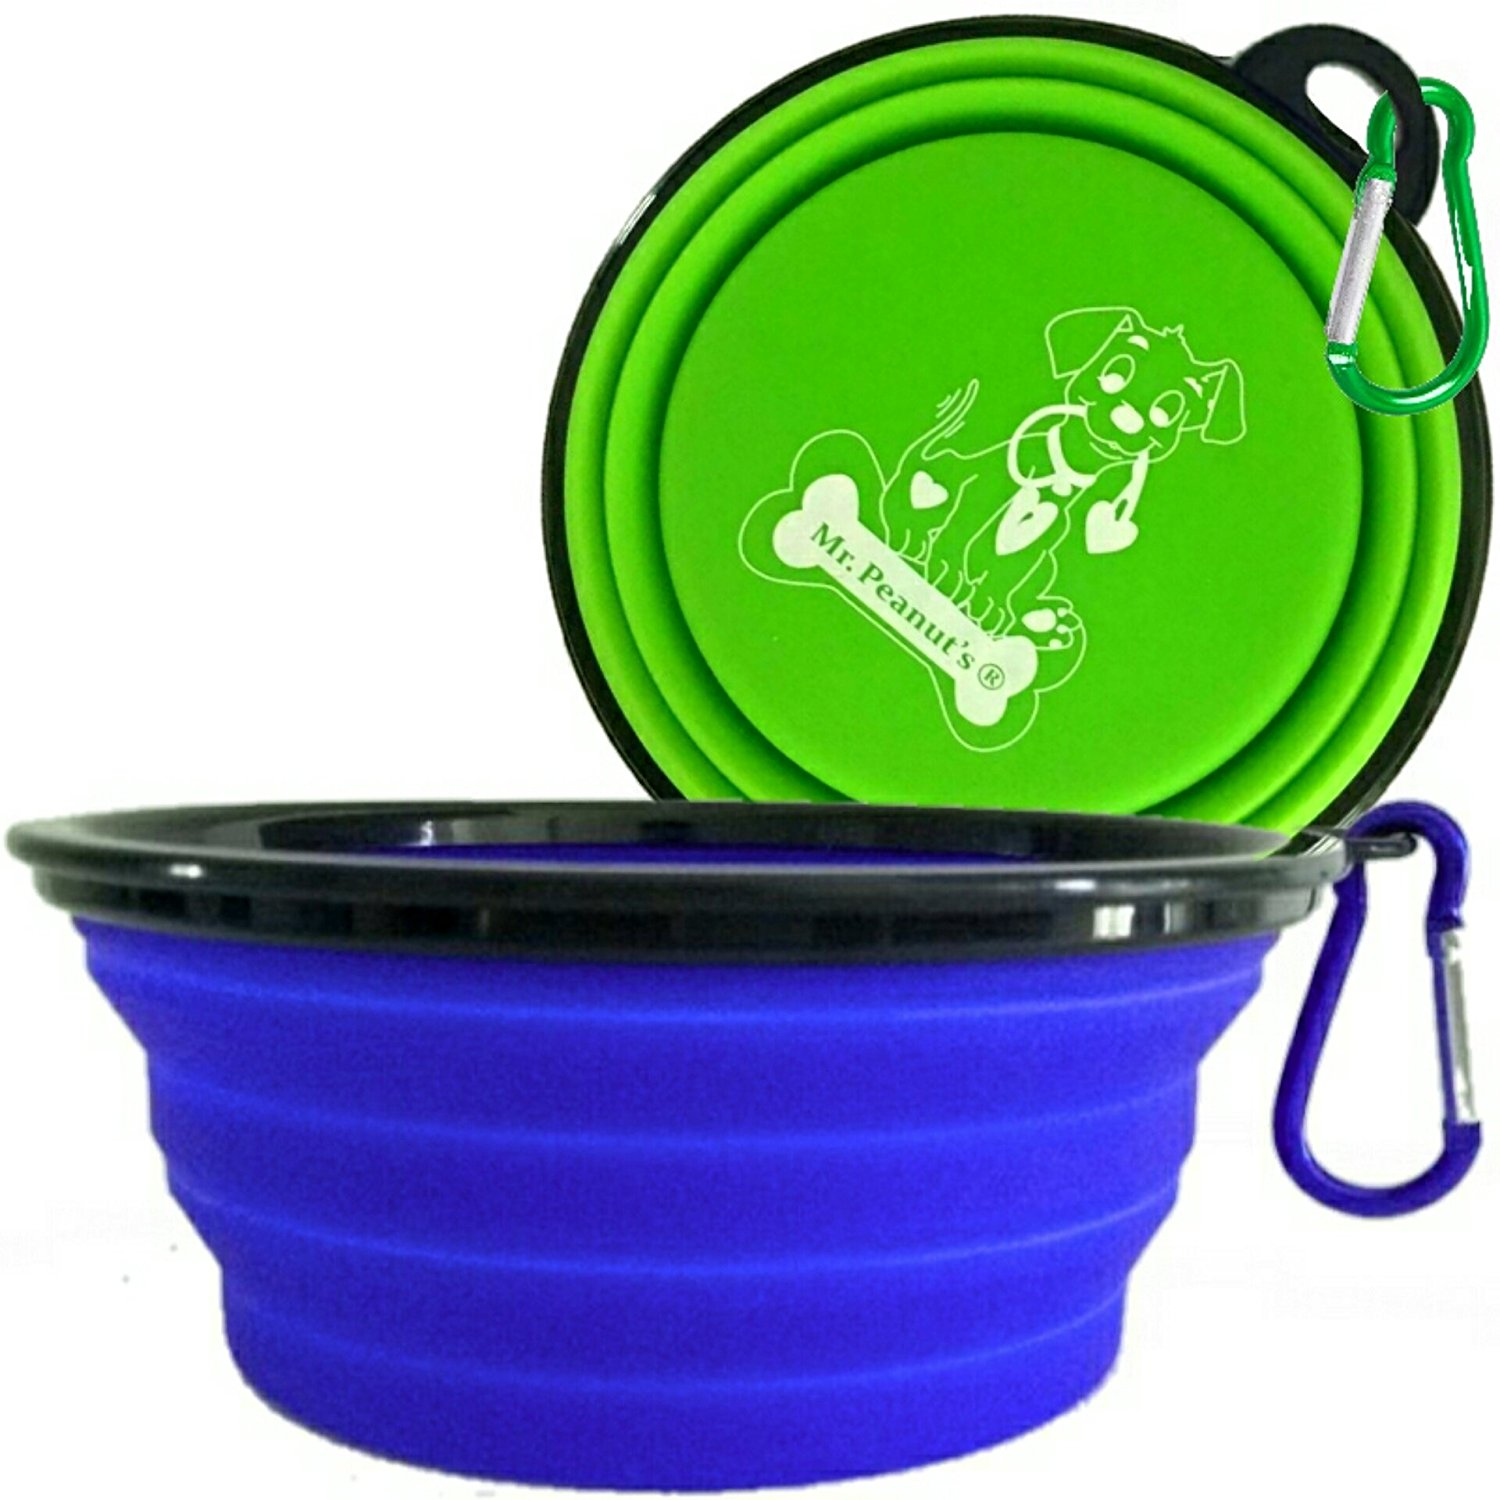 XL Collapsible Dog Bowls by Mr. Peanut's, 2 Pak, Extra Large 34oz, 7' Diameter for Large Dogs, Dishwasher Safe BPA FREE Food Grade Silicone, Portable Foldable Travel Pet Bowls for Journeys & Hikes